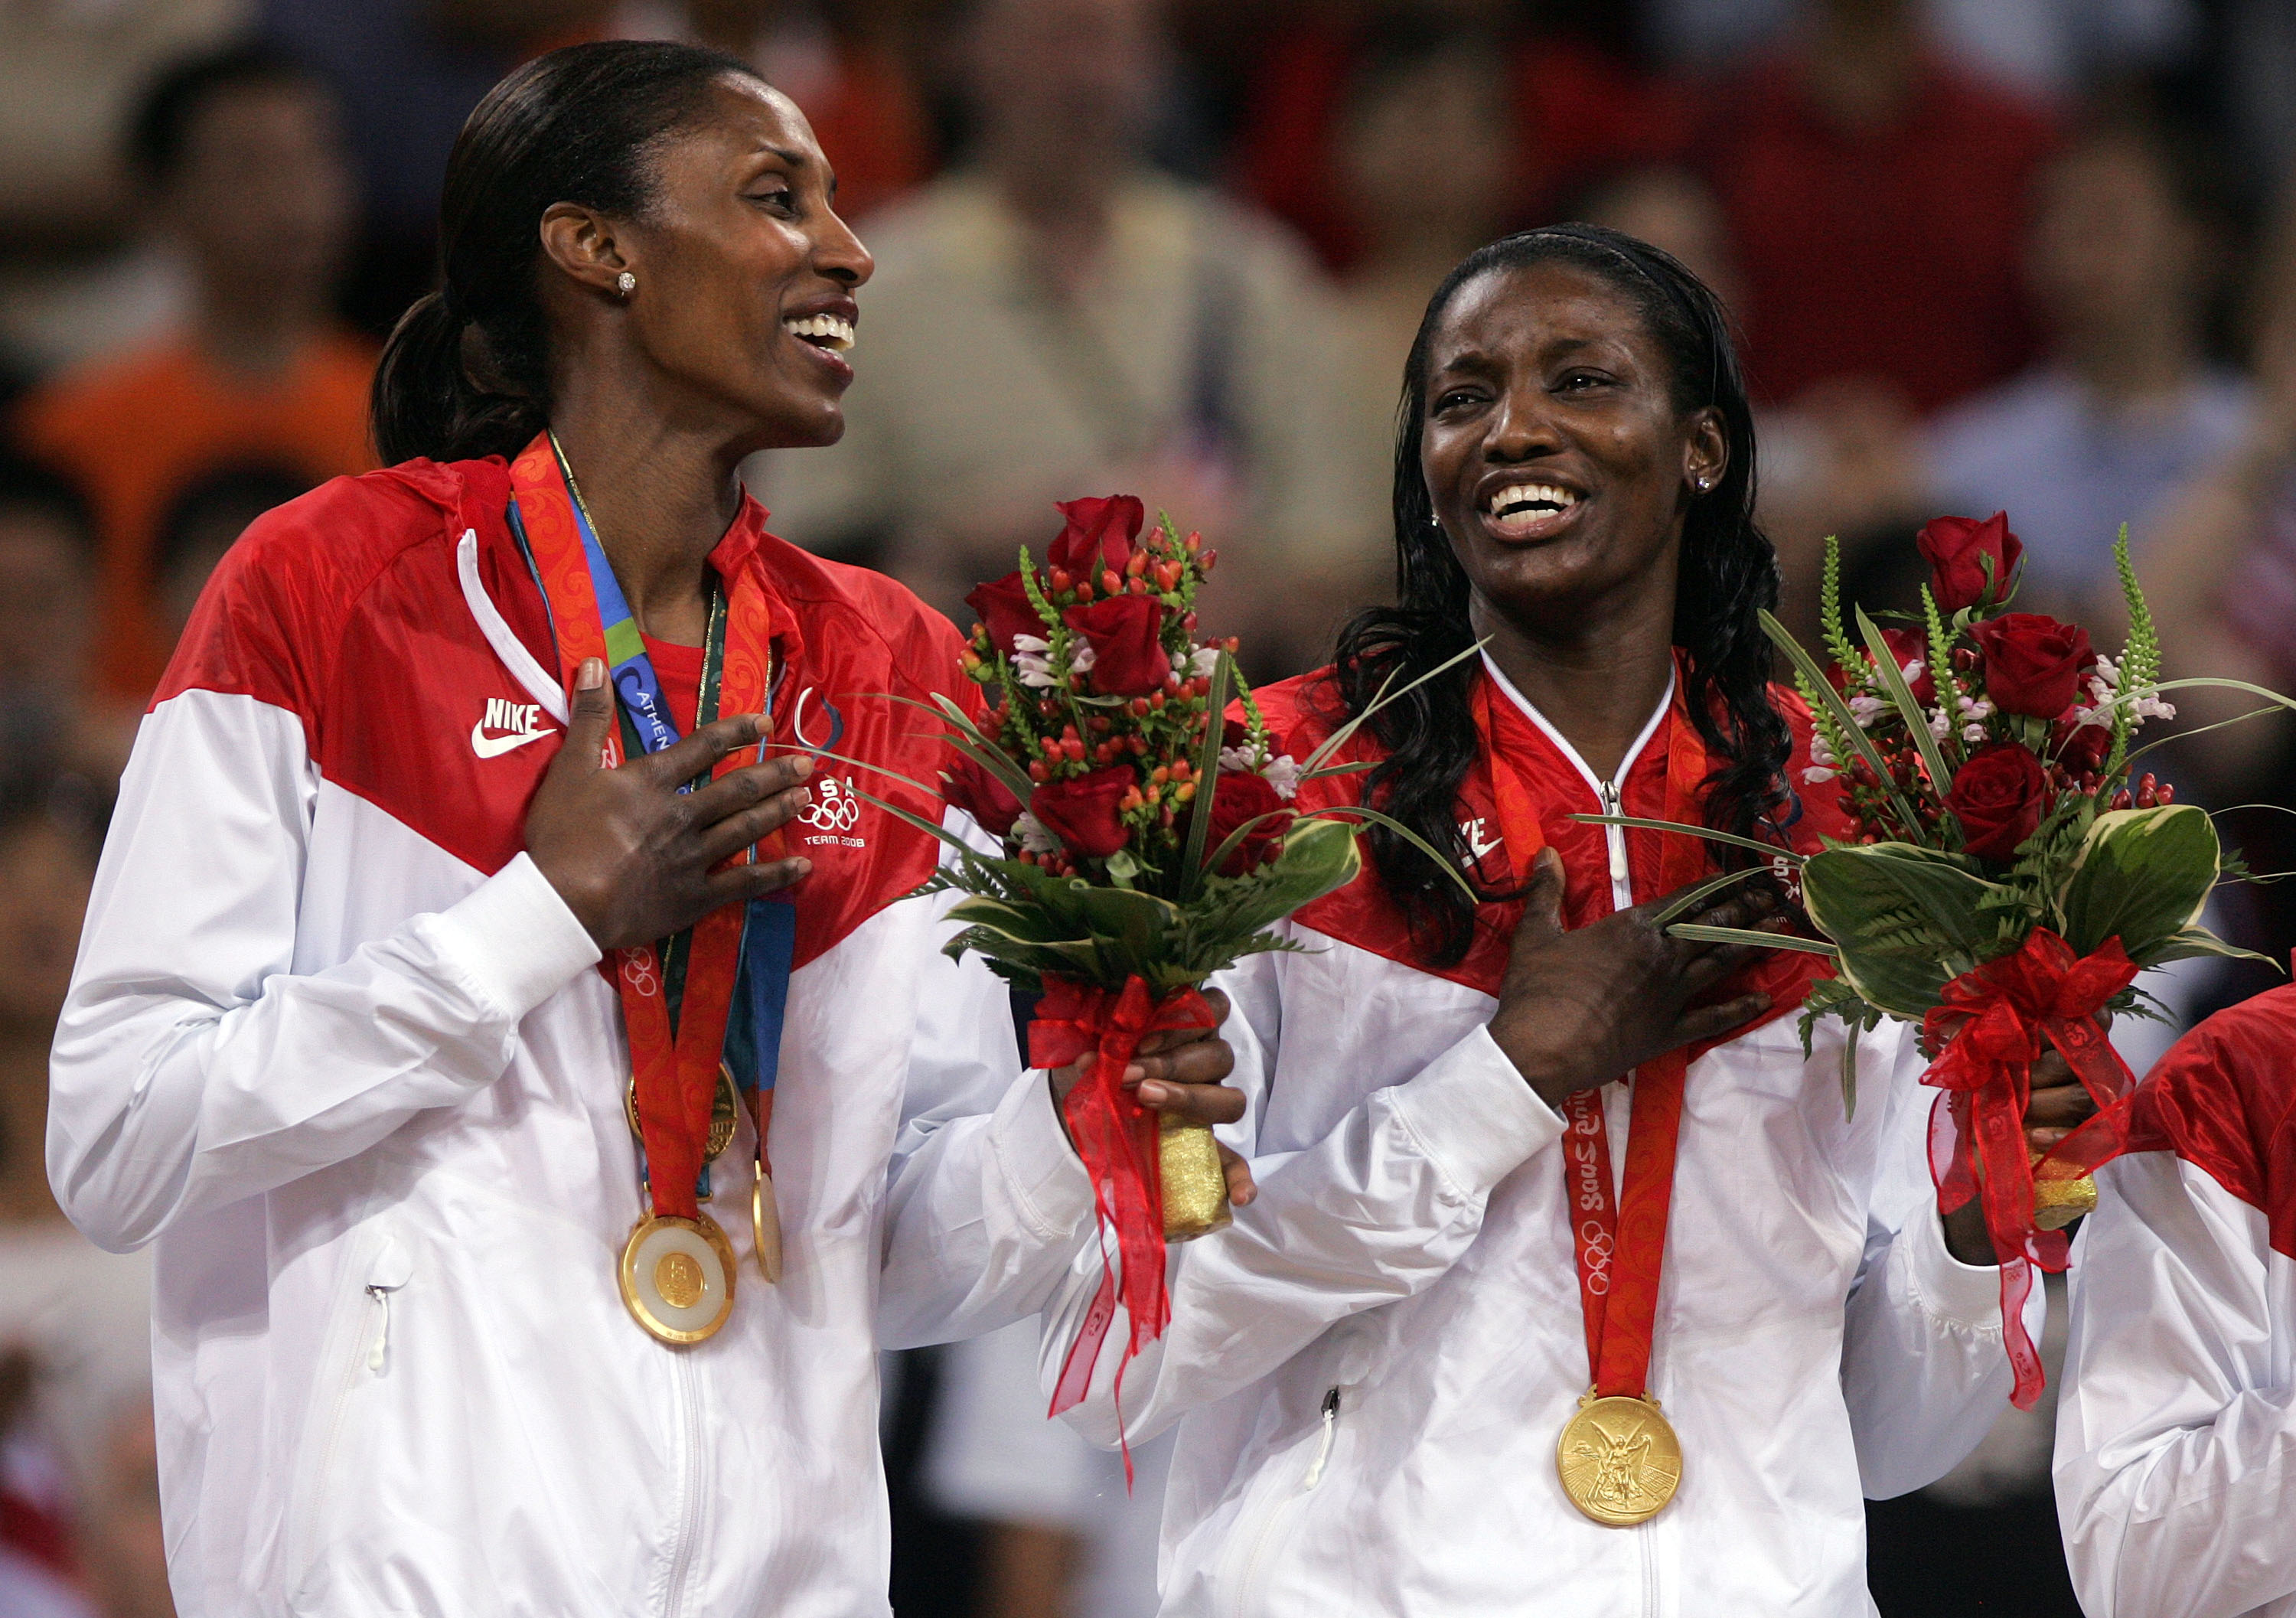 BEIJING - AUGUST 23:  Lisa Leslie and Delisha Milton-Jones celebrate after winning the gold medal against Australia at the Beijing Olympic Basketball Gymnasium on Day 15 of the Beijing 2008 Olympic Games on August 23, 2008 in Beijing, China.  (Photo by Je